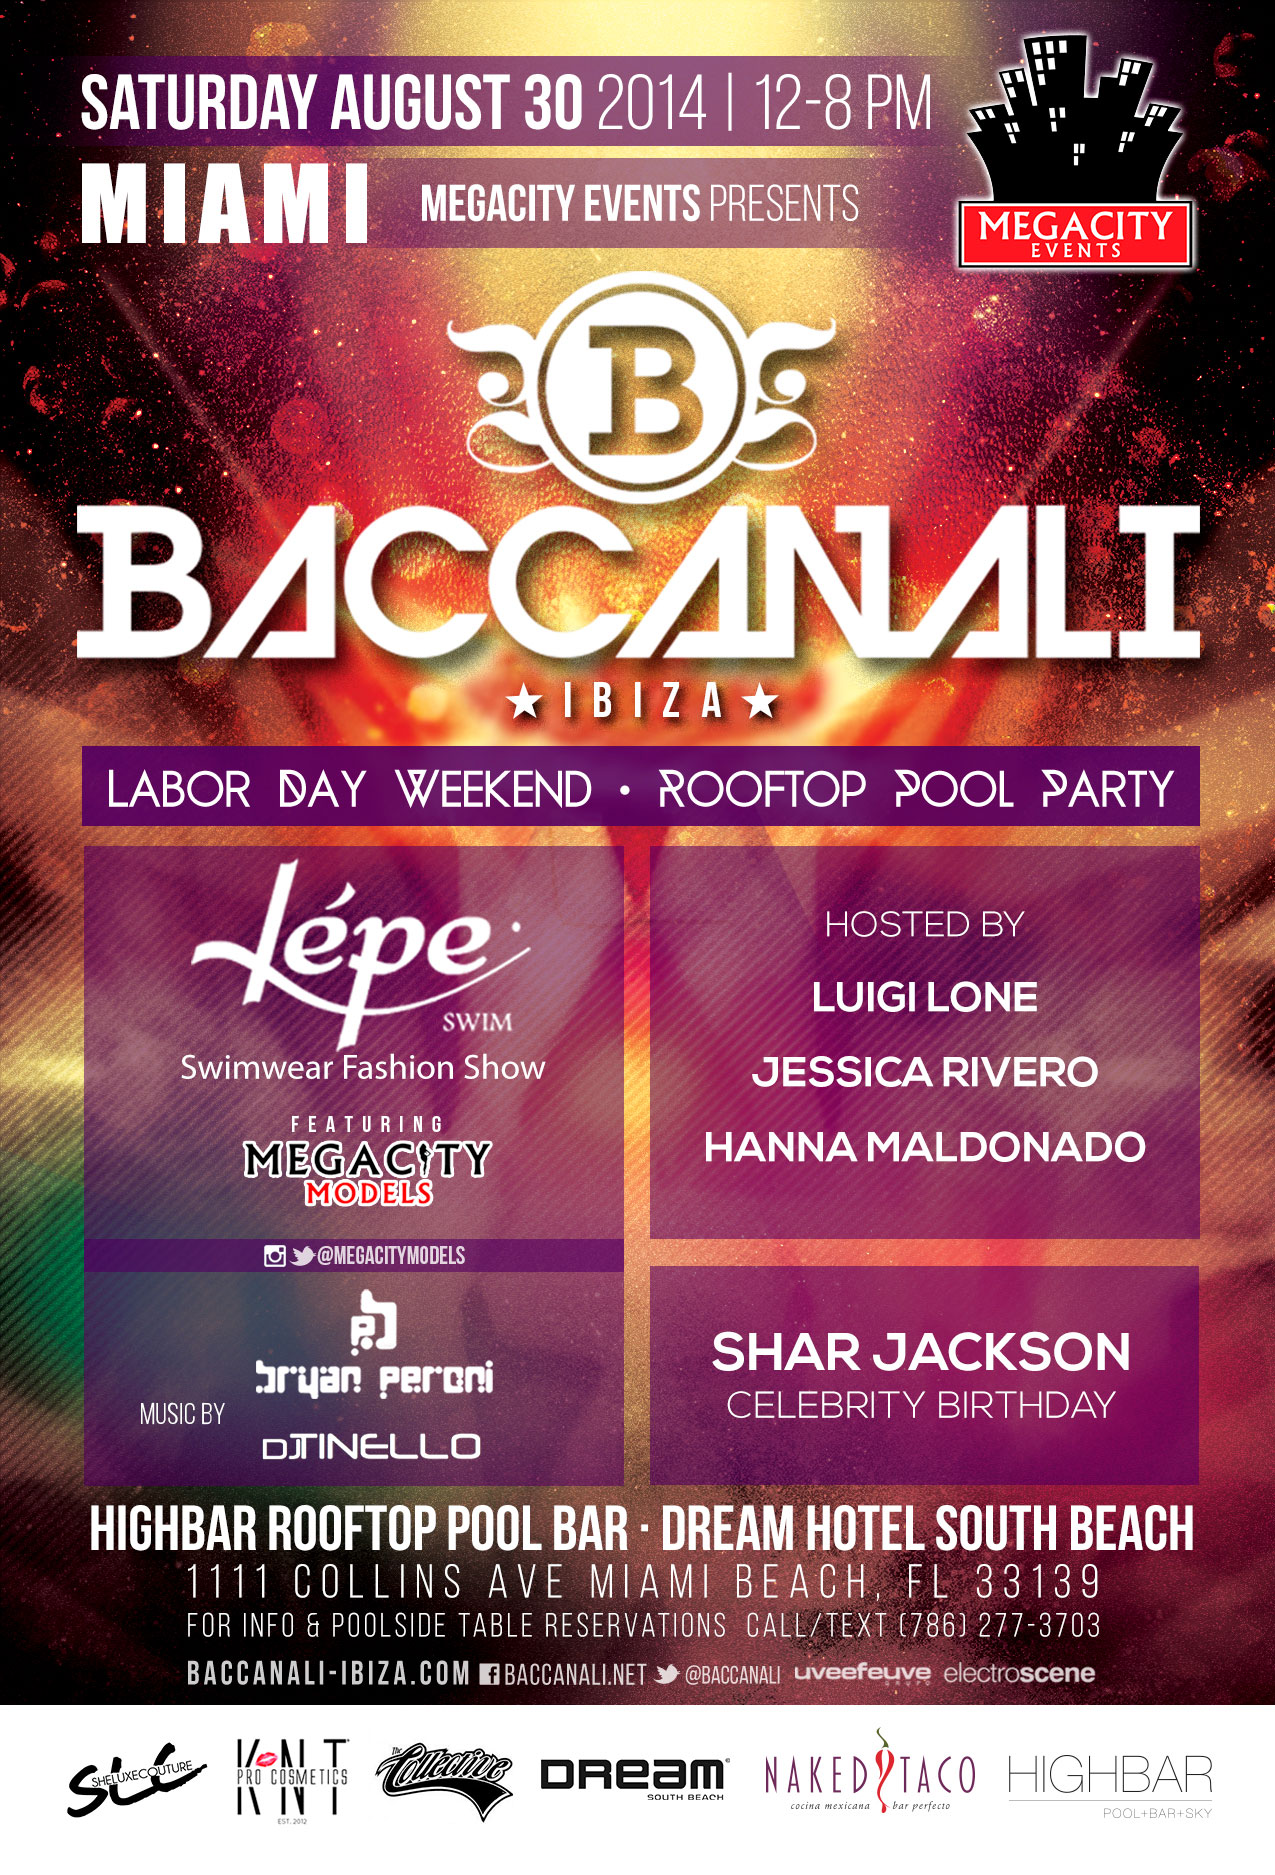 Baccanali Miami Labor Day Weekend Pool Party 8 30 14 The Soul Of Miami